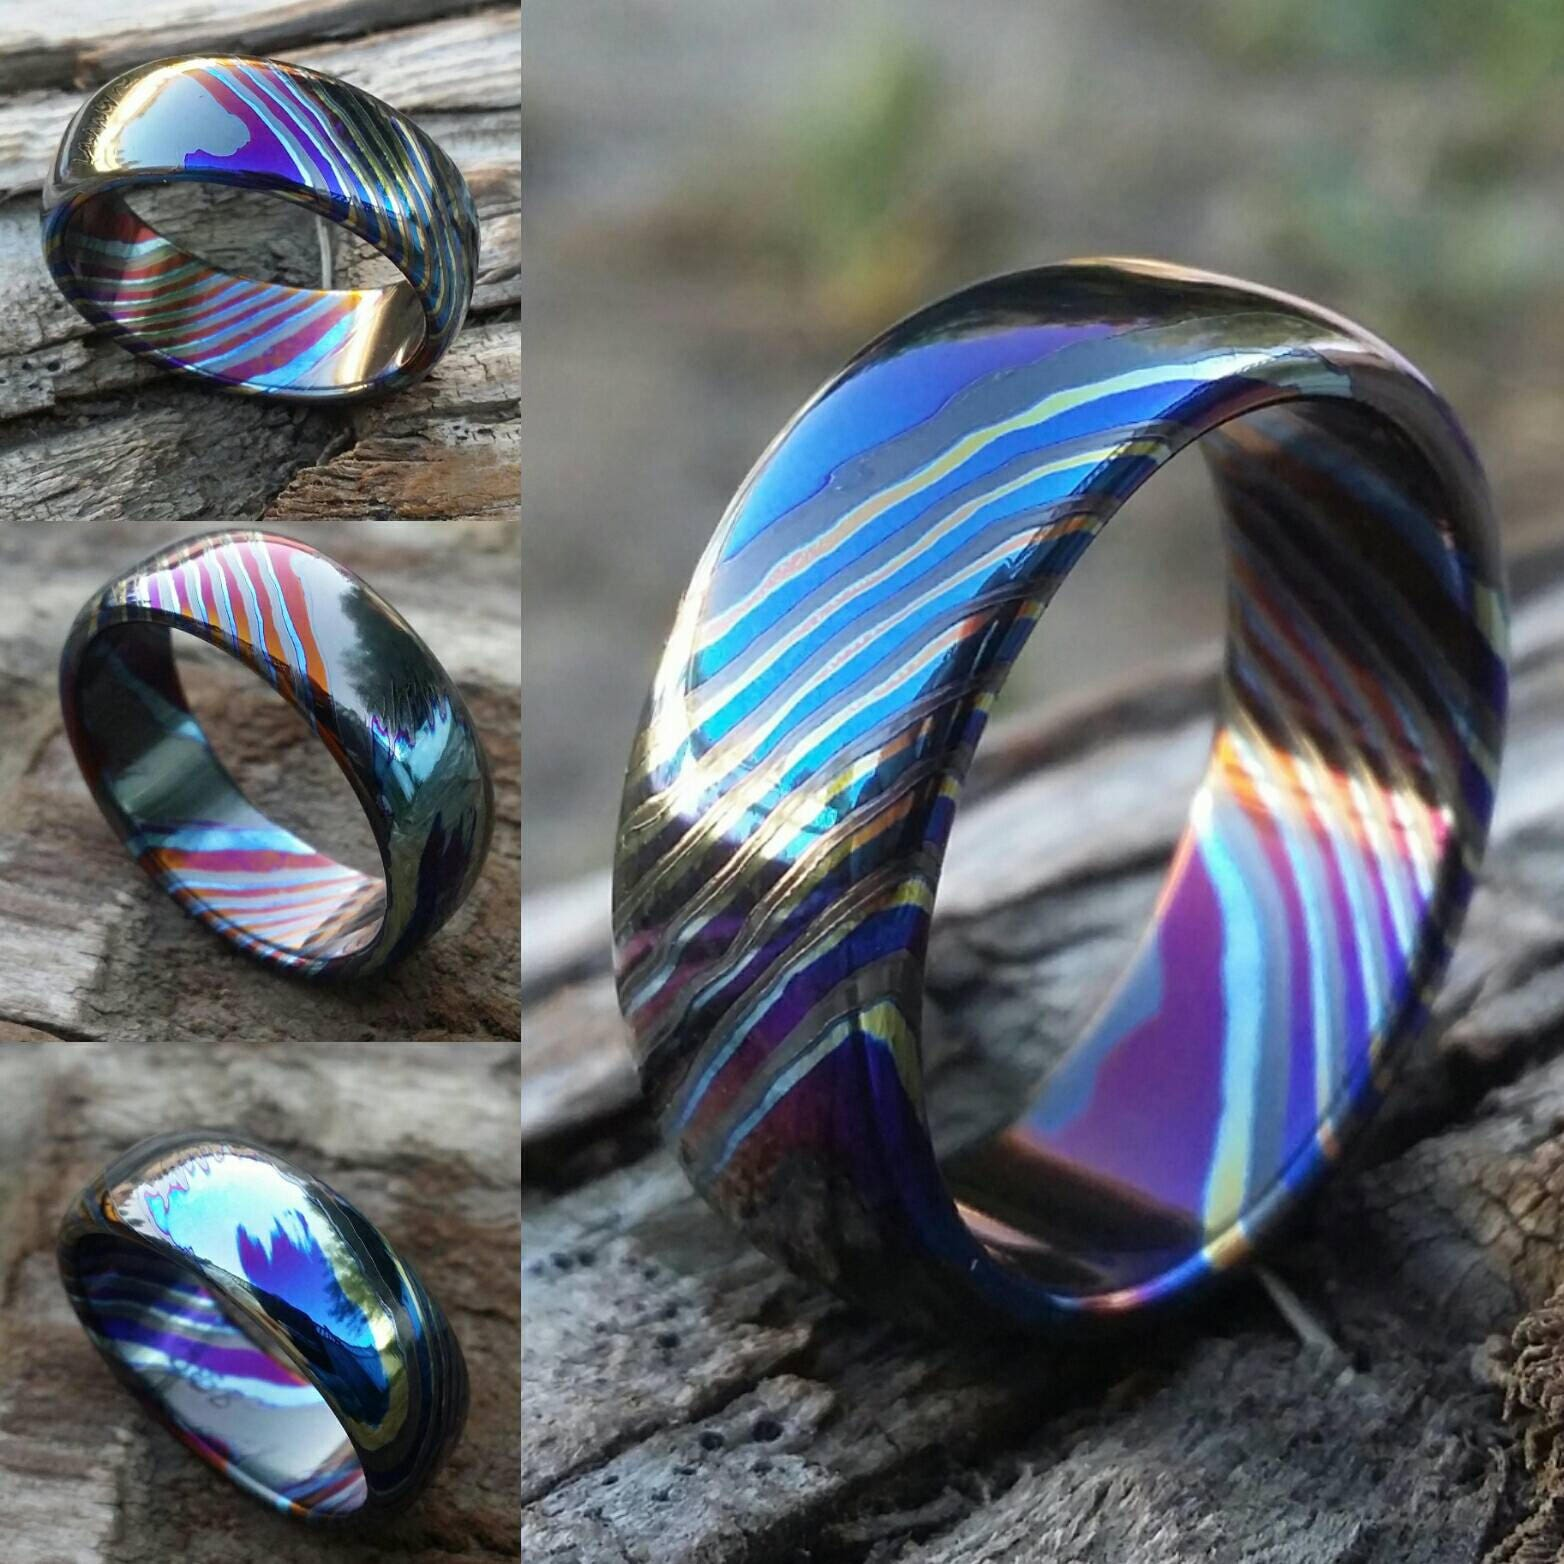 LIMITED EDITIONSolid Black Timascus zrti ring 3mm 9mm wide